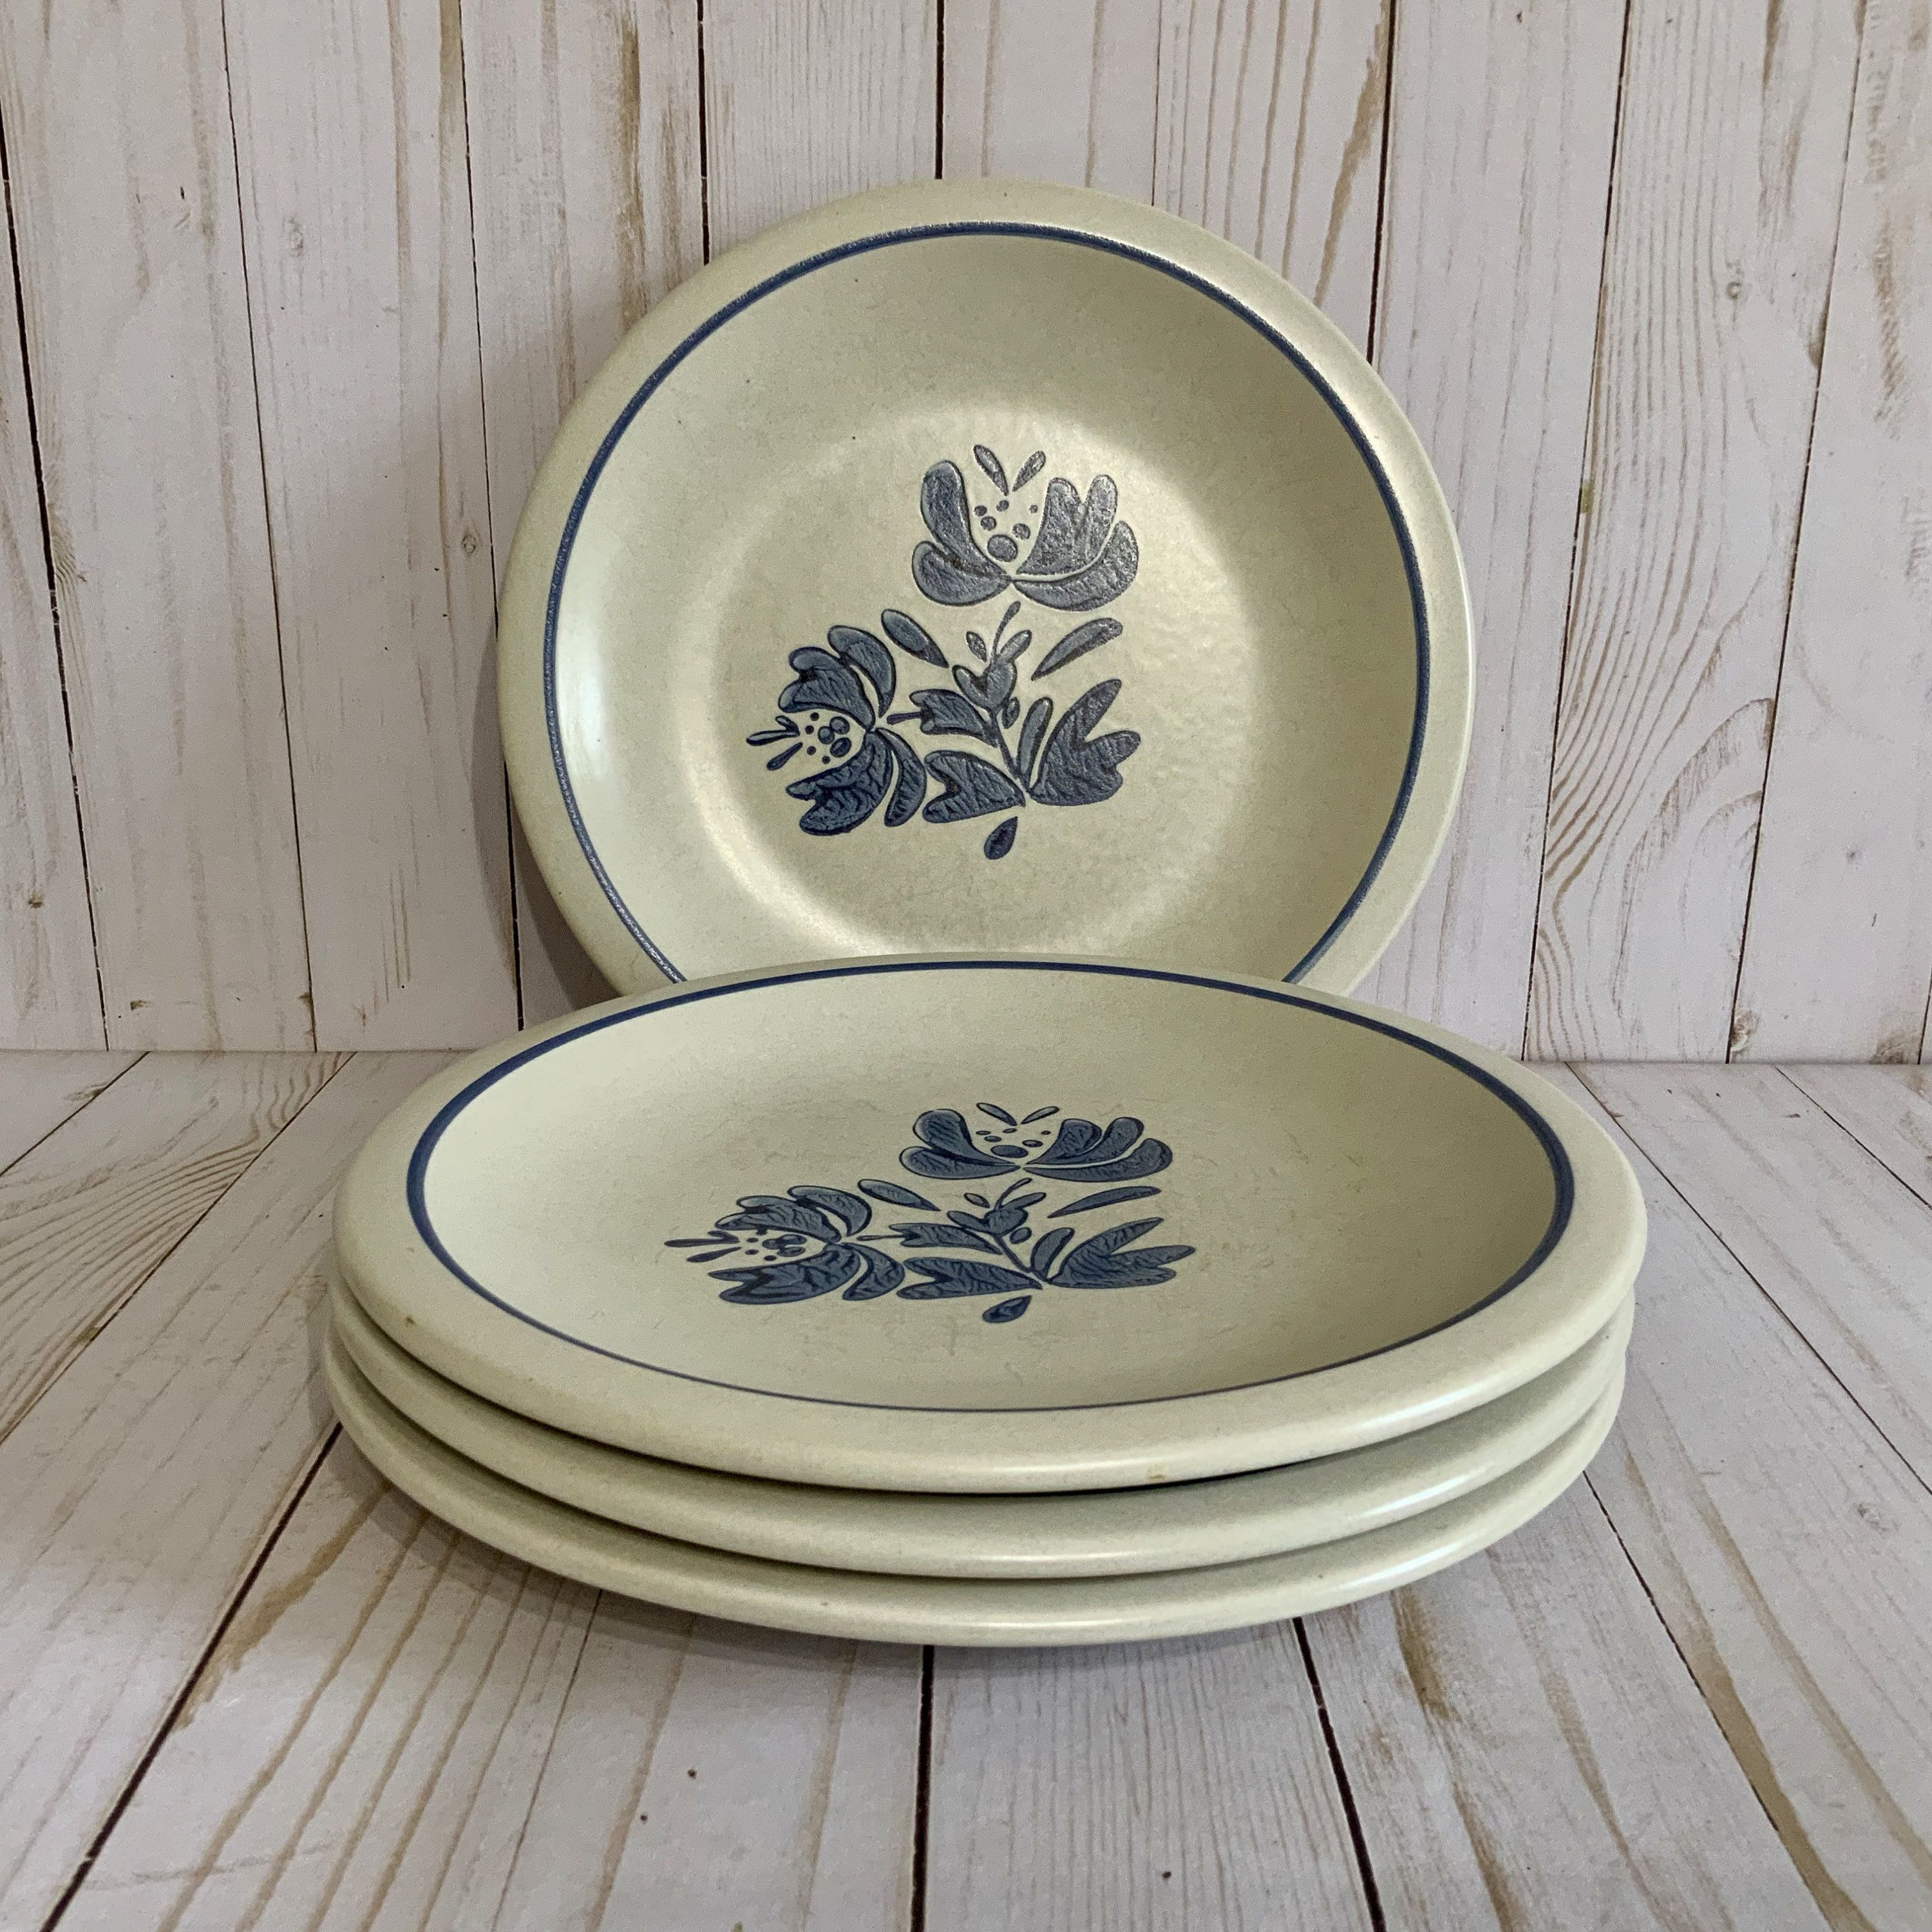 Vintage Pfaltzgraff Yorktowne 10 Dinner Plates Set Of Four 4 Vintage Replacement Plates Usa By Cottontopvi Dinner Plate Sets Pfaltzgraff Dinner Plates